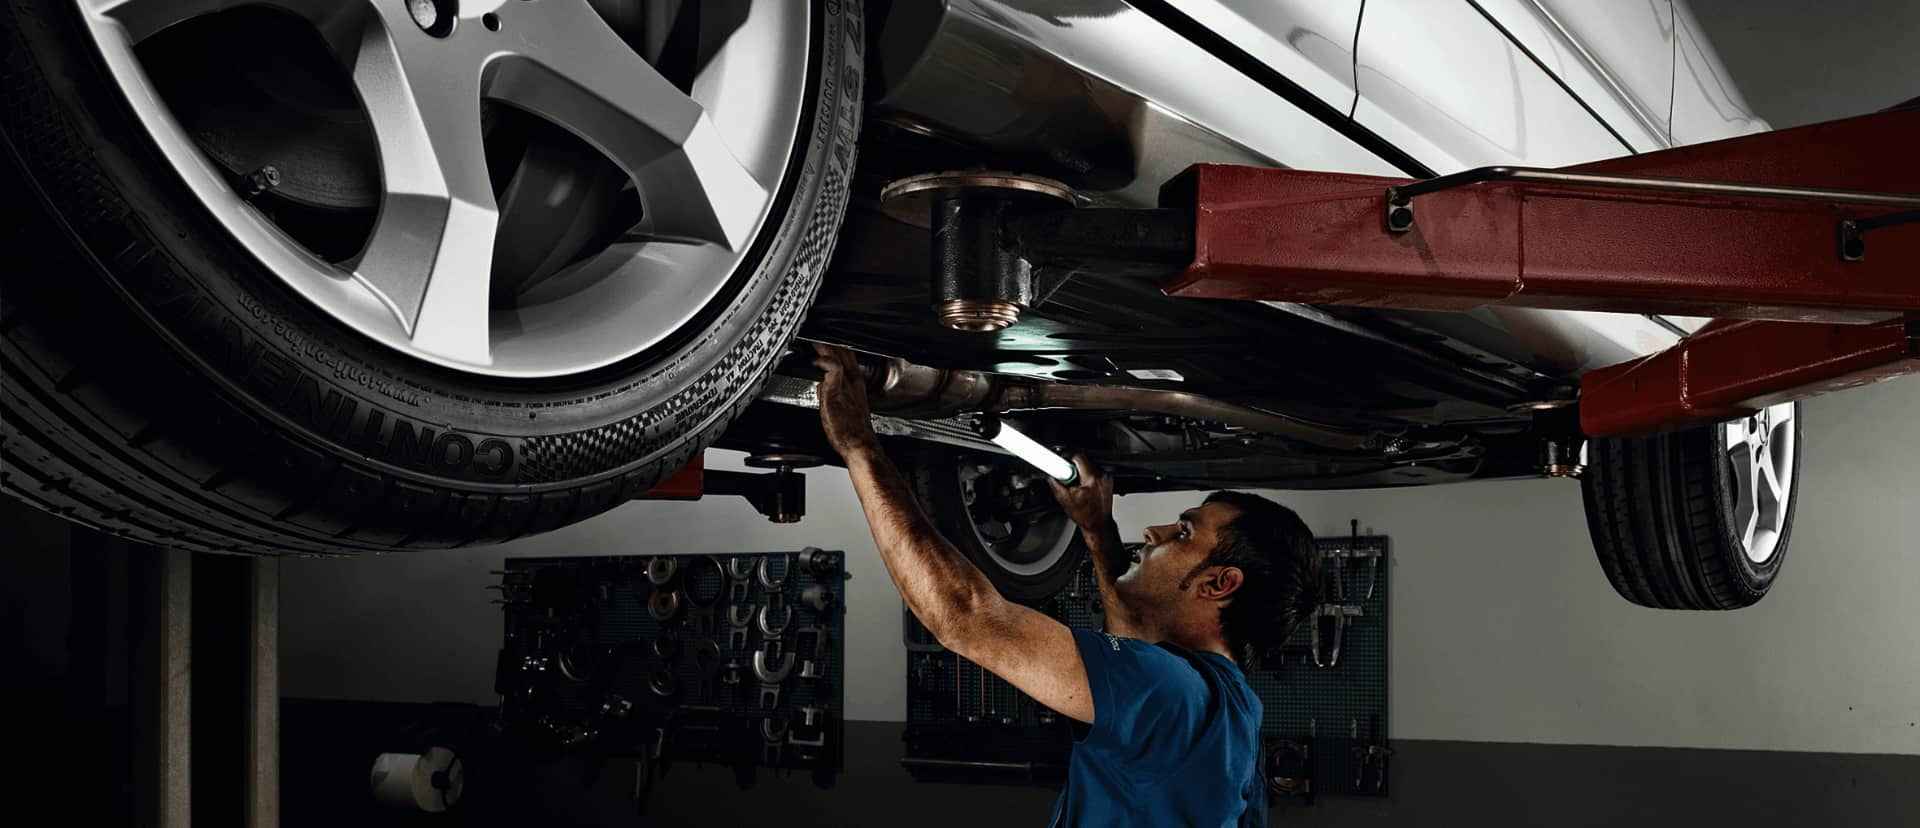 mercedes-benz-new-service-benchmark-for-aftersales-service-by-engine